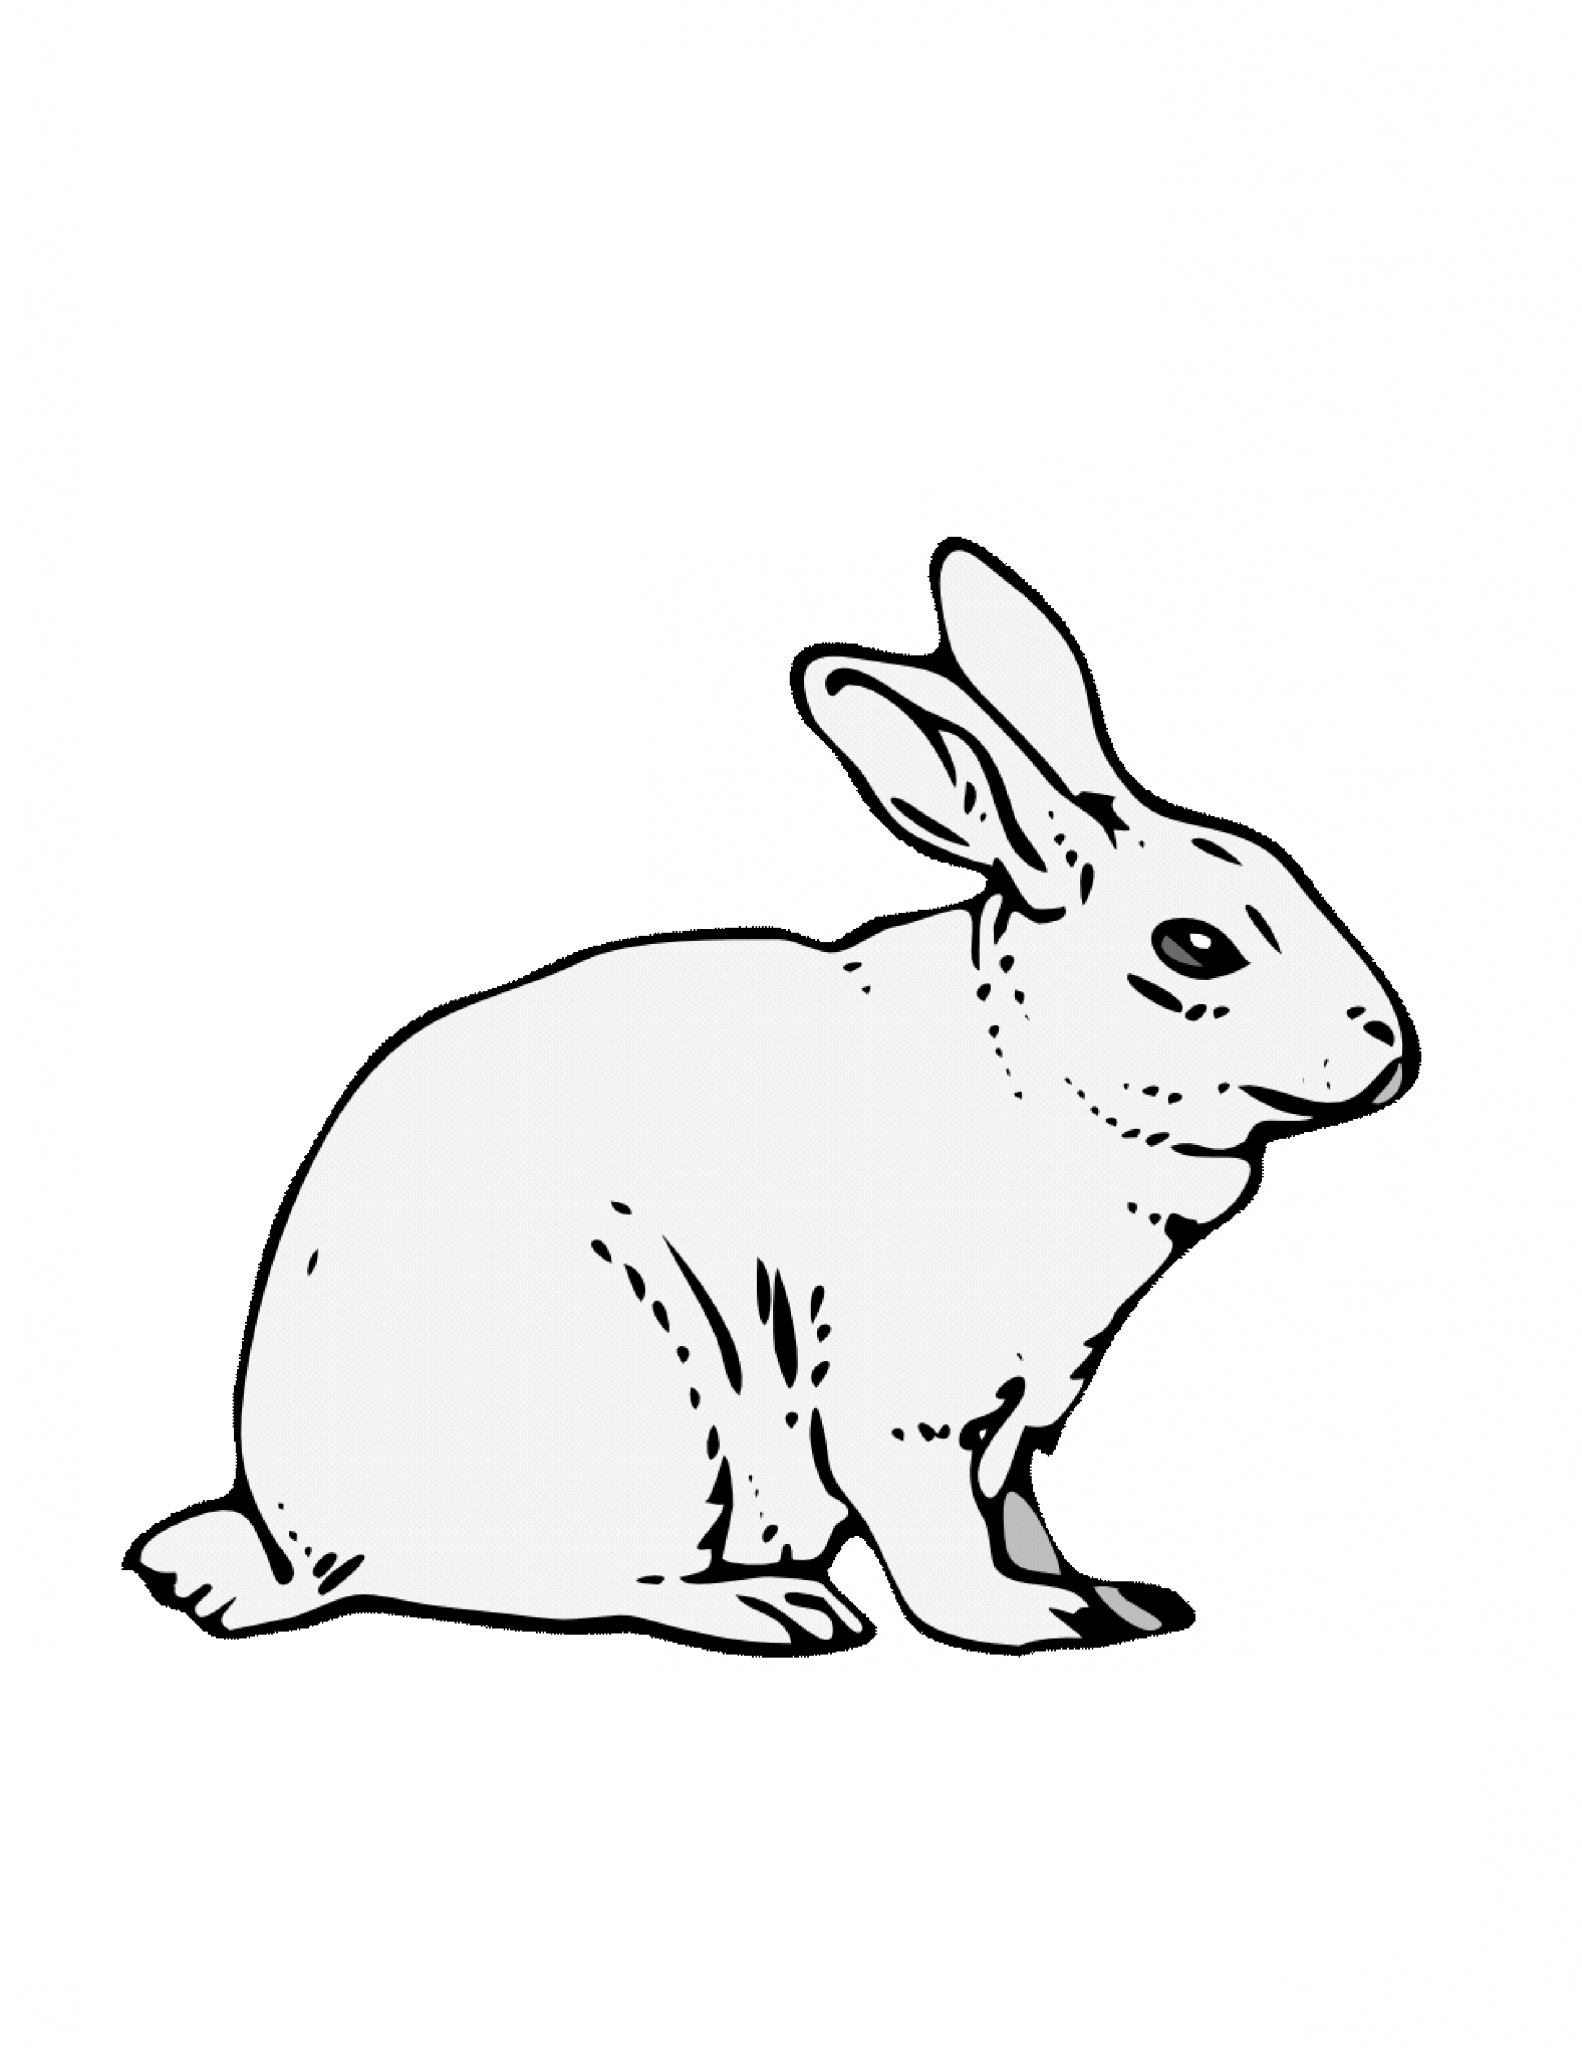 bunny coloring pages free 60 rabbit shape templates and crafts colouring pages bunny pages coloring free